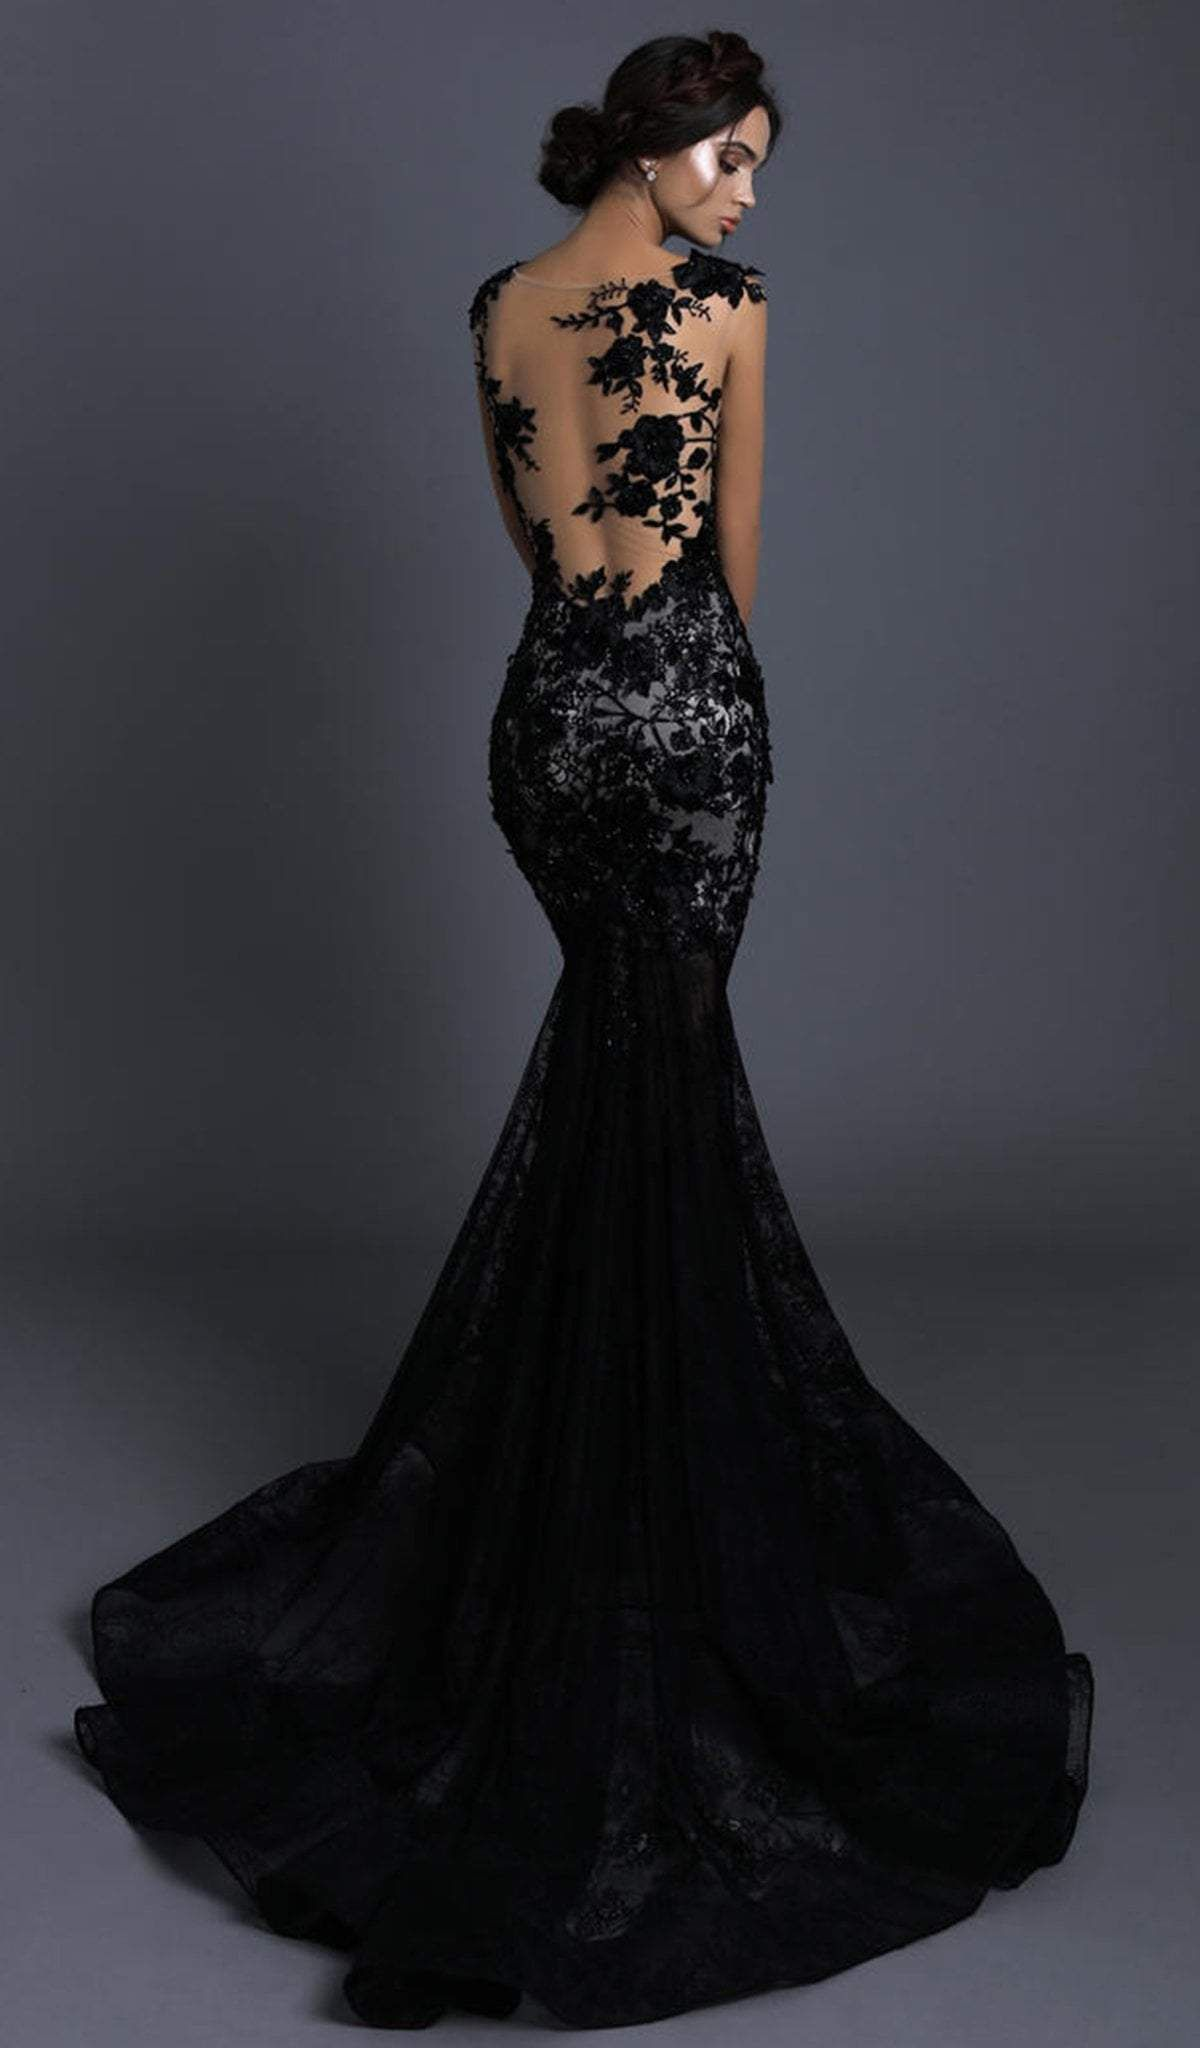 Tarik Ediz 93600 Floral Lace Bateau Mermaid Dress Black Lace Wedding Dress Black Lace Wedding Black Wedding Gowns